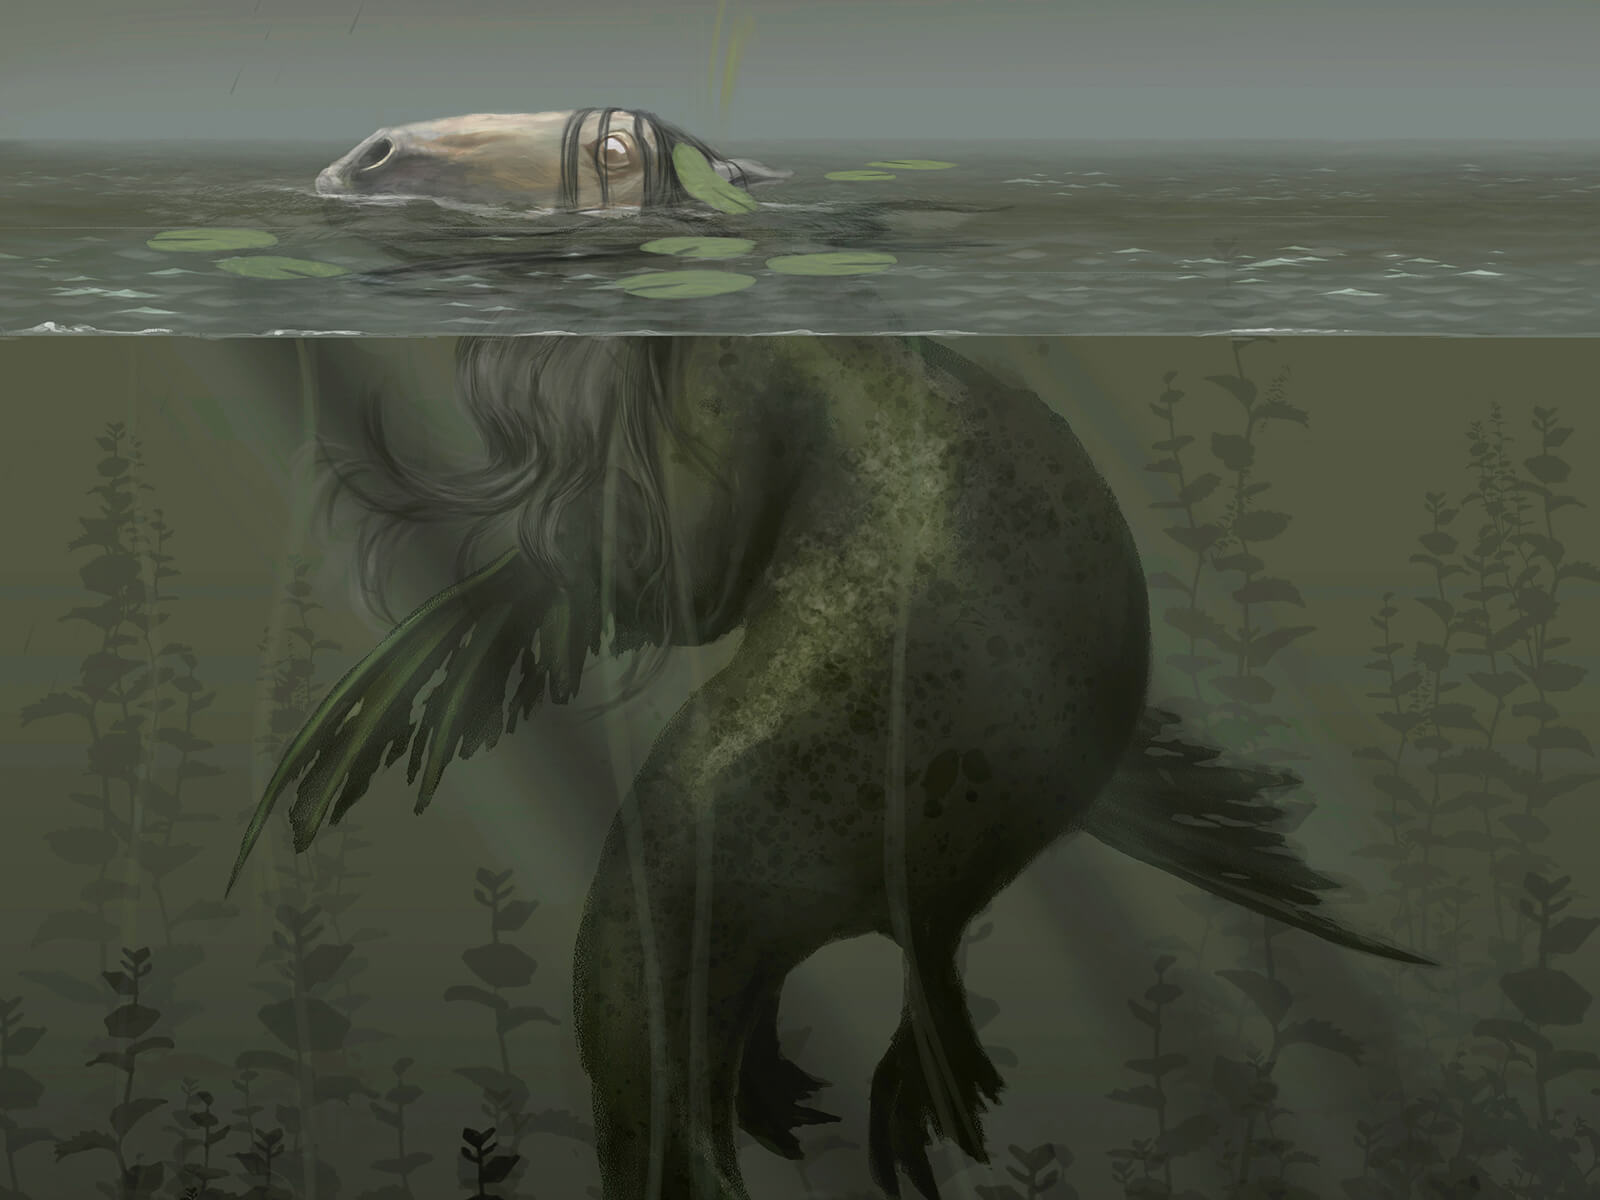 What appears to be a horse's head pokes above the surface of a lake, but a green sea-slug like creature actually lurks below.